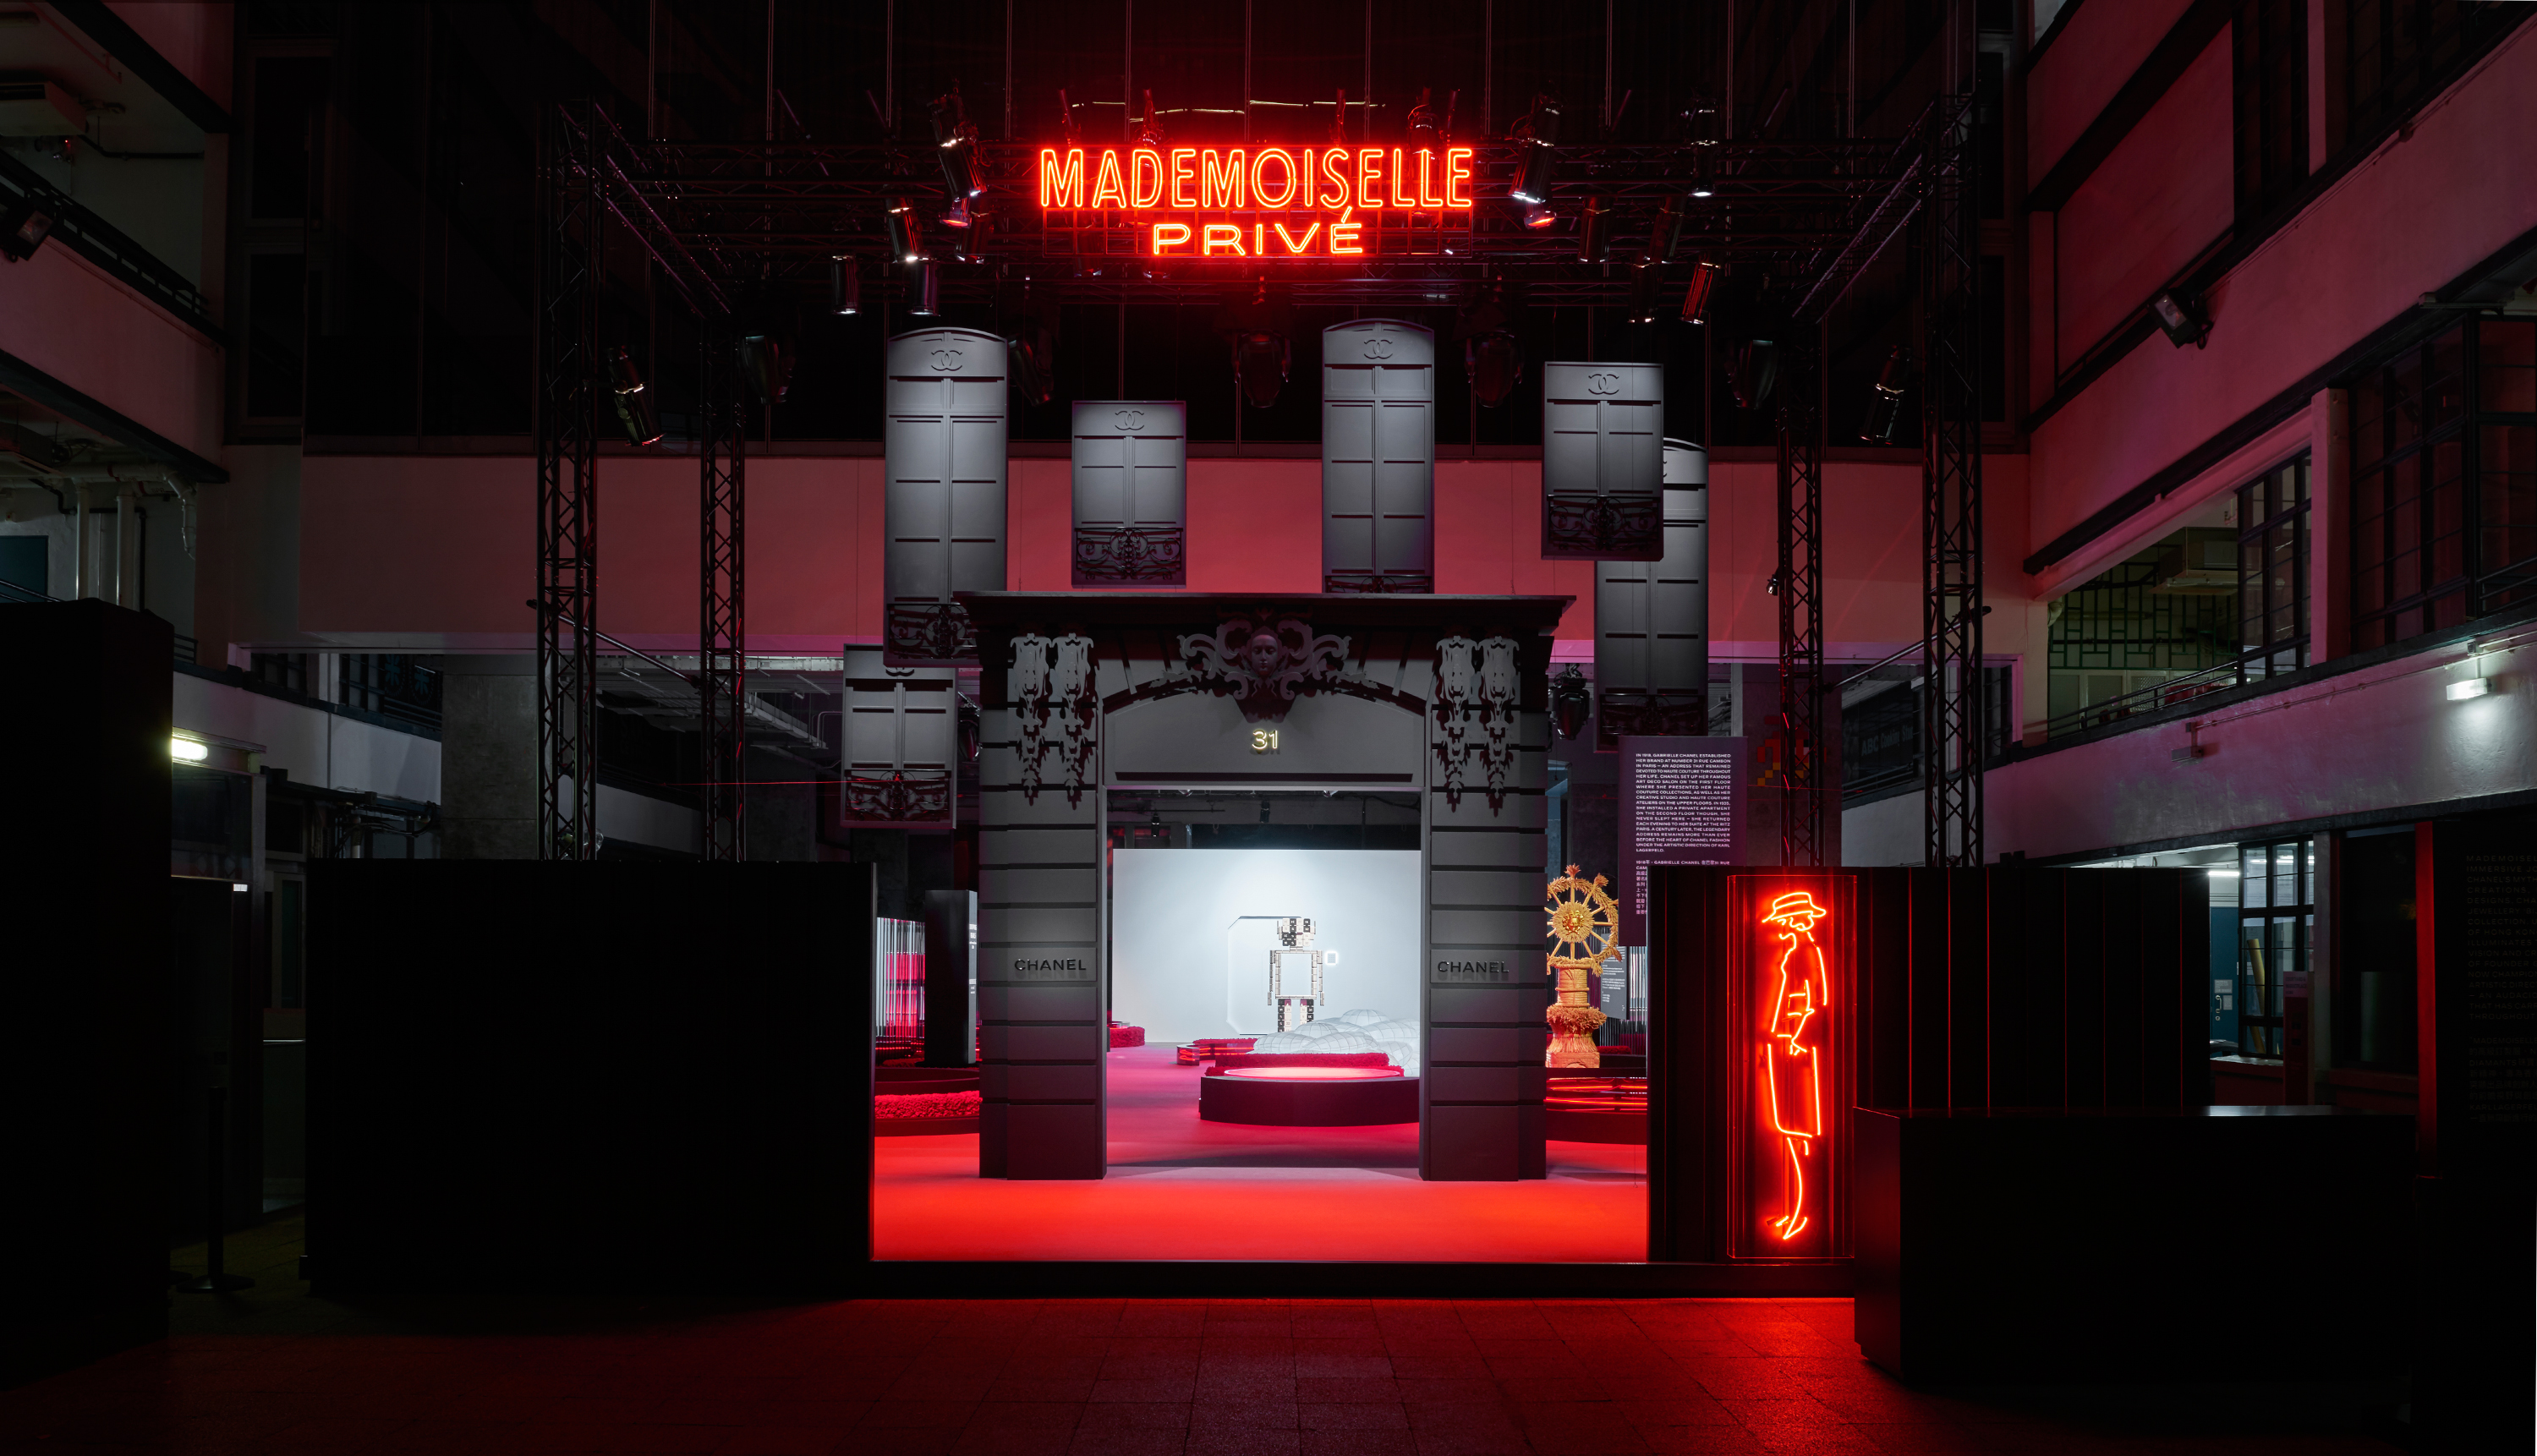 What to expect from Chanel's Mademoiselle Privé Hong Kong exhibition